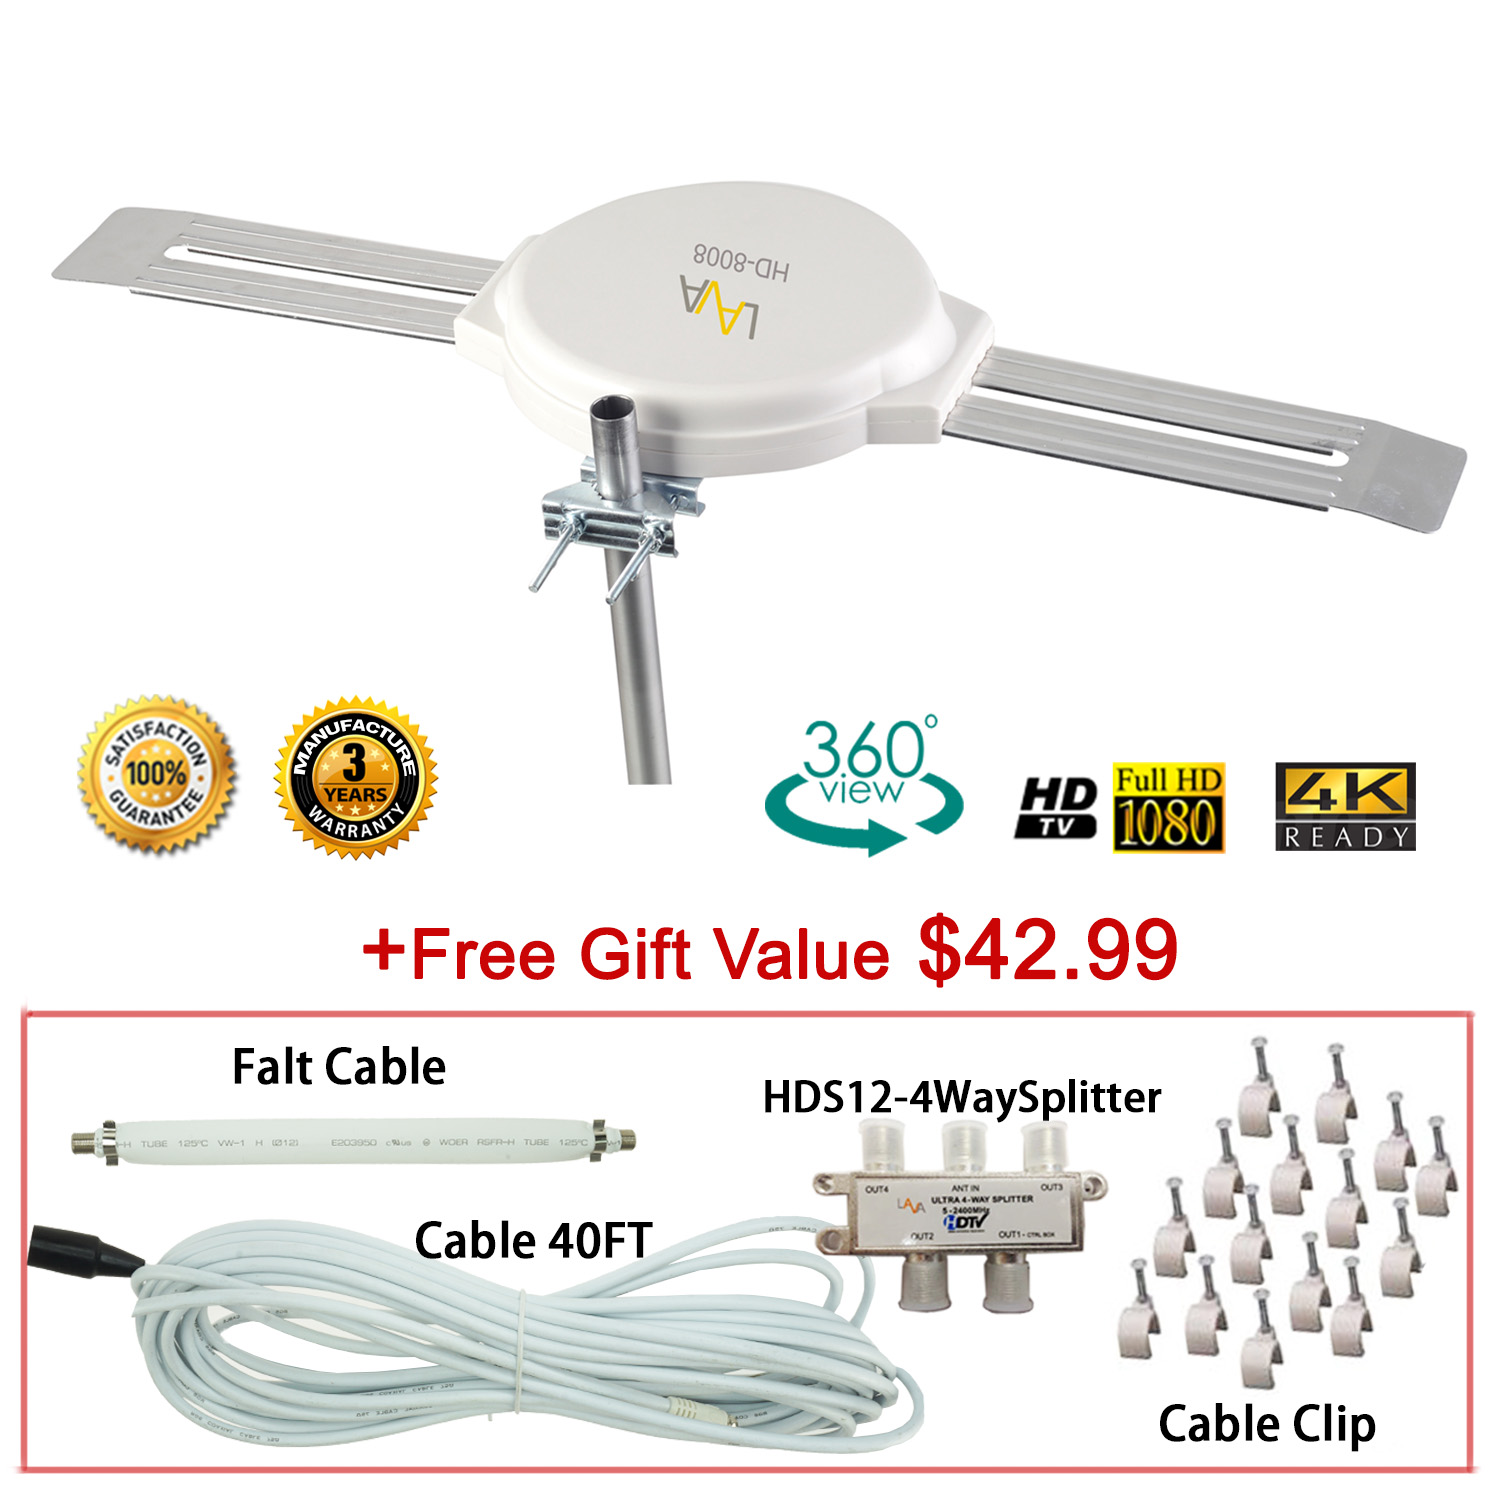 [FREE Installation Kit] 4K Omnidirectional LAVA TV Antenna OmniPro HD-8008